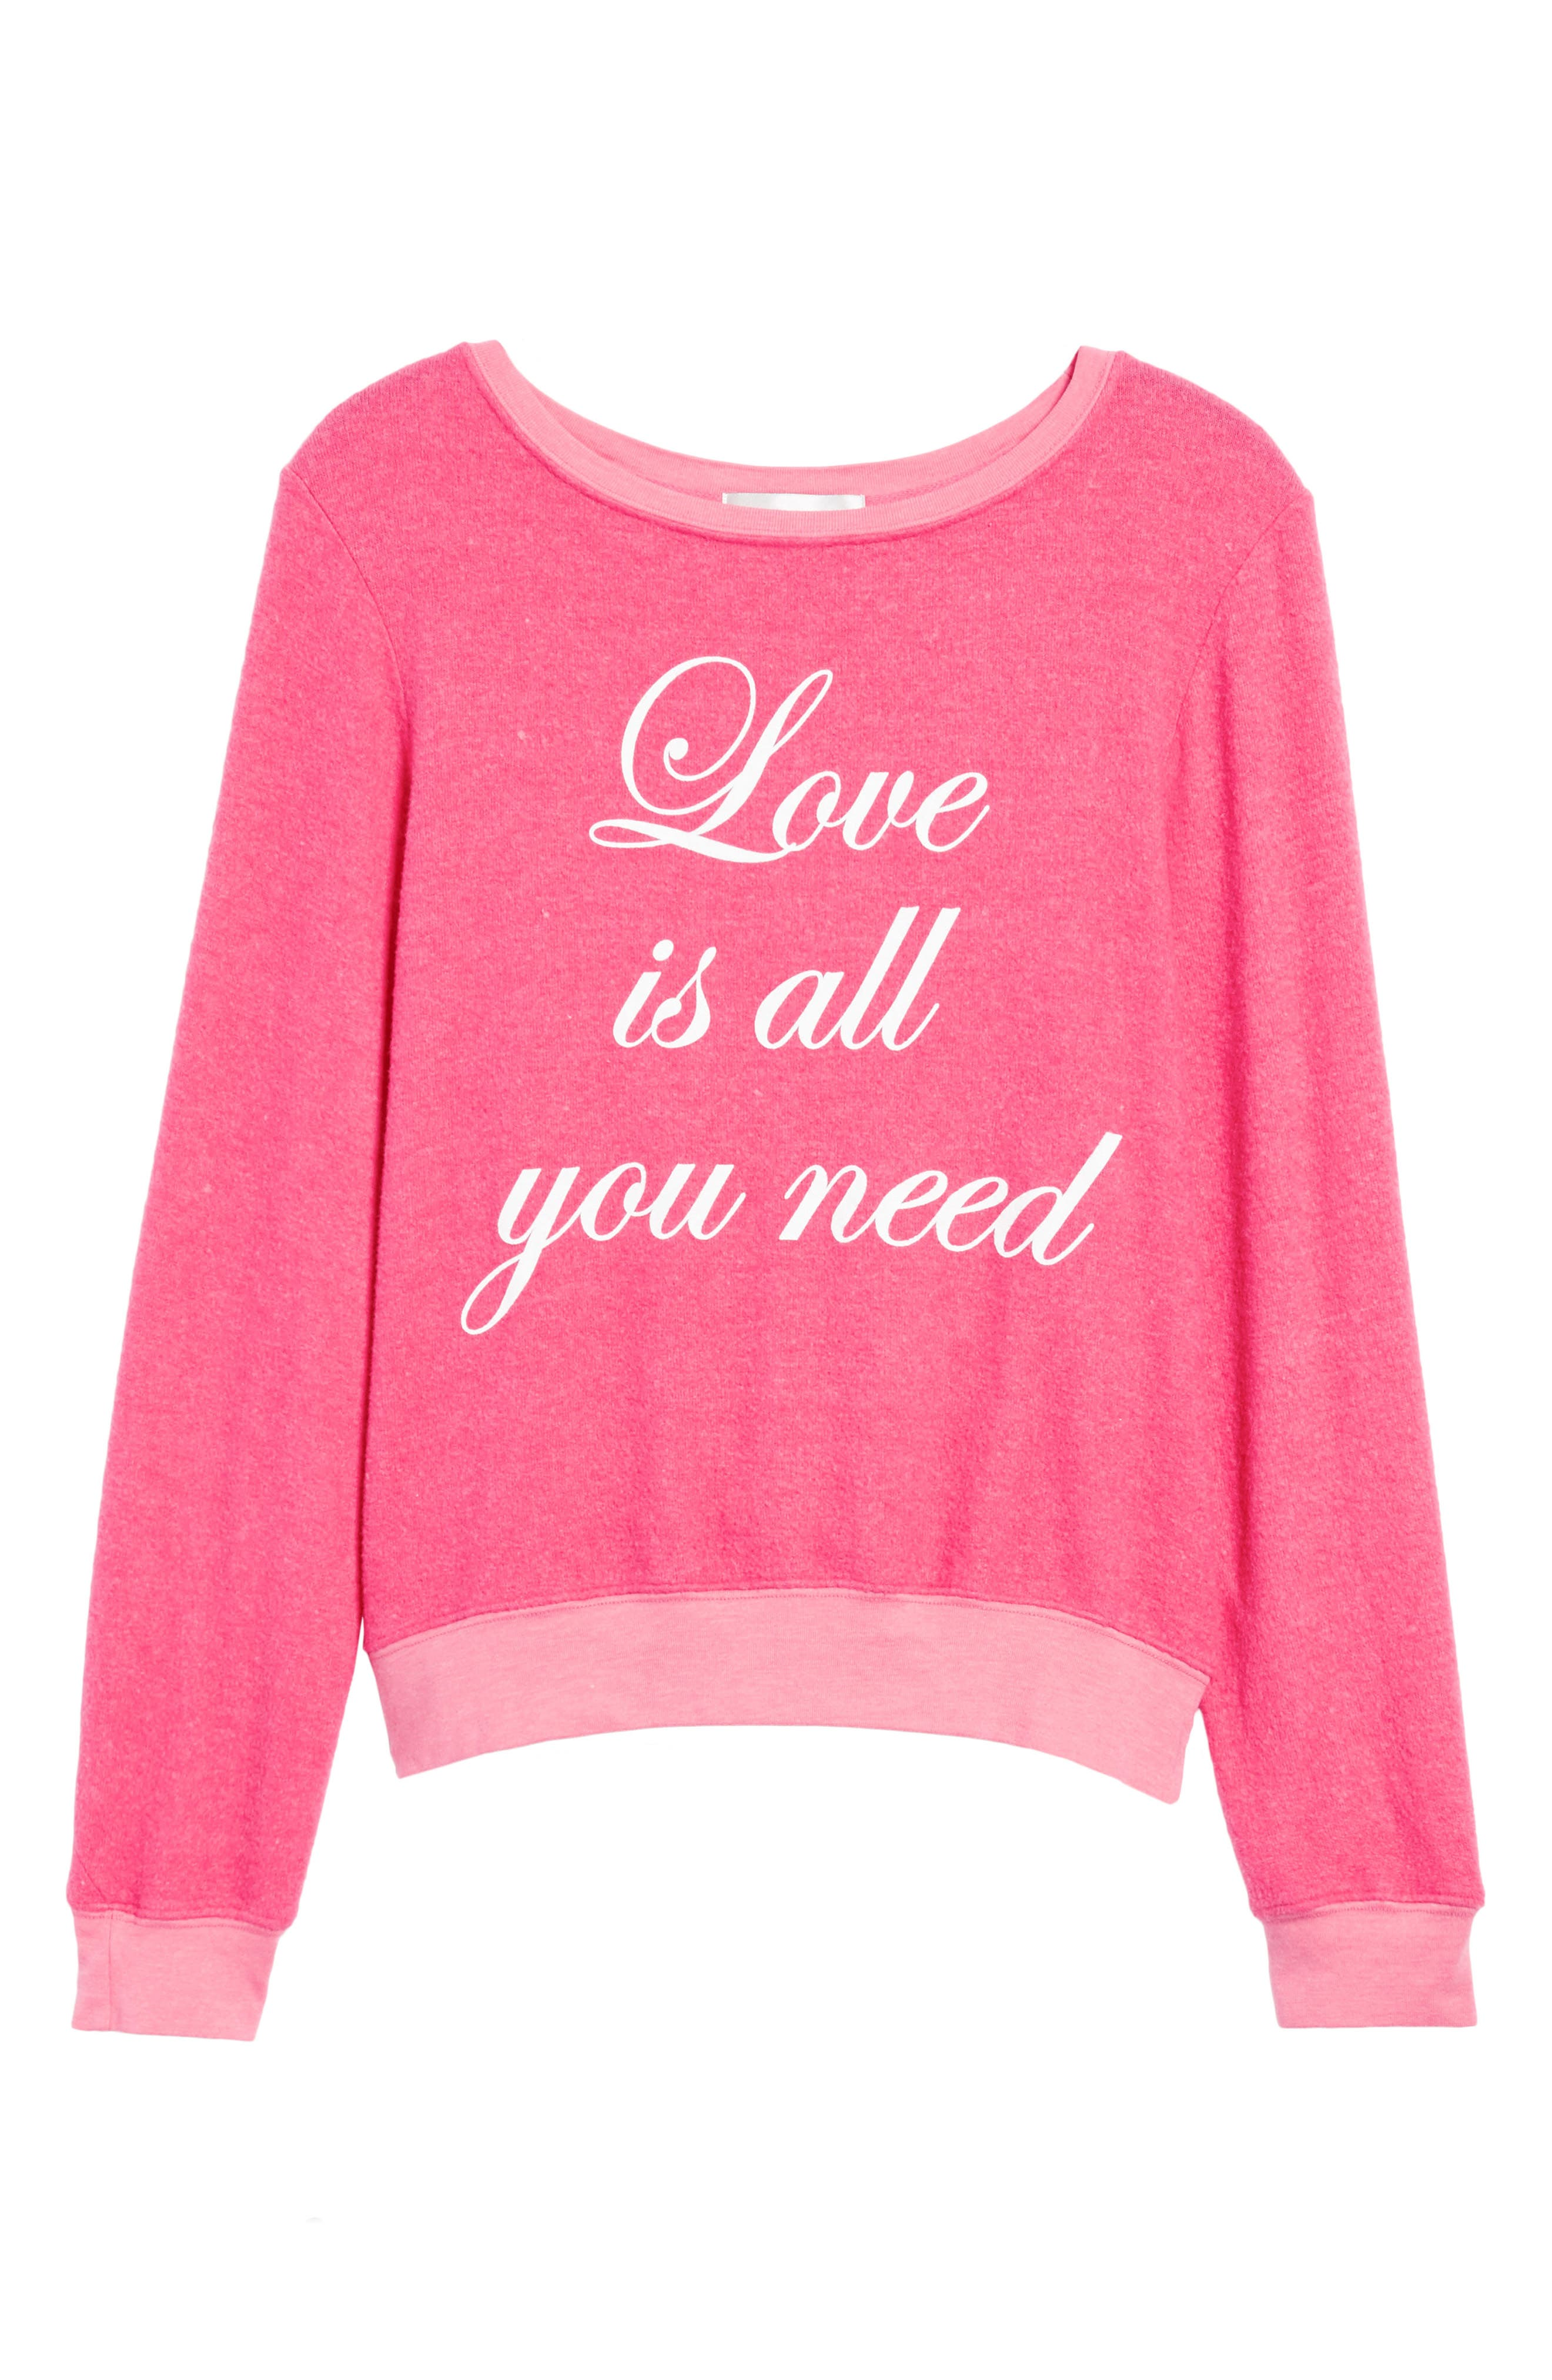 Love Is All Sweatshirt,                             Alternate thumbnail 6, color,                             Neon Pink